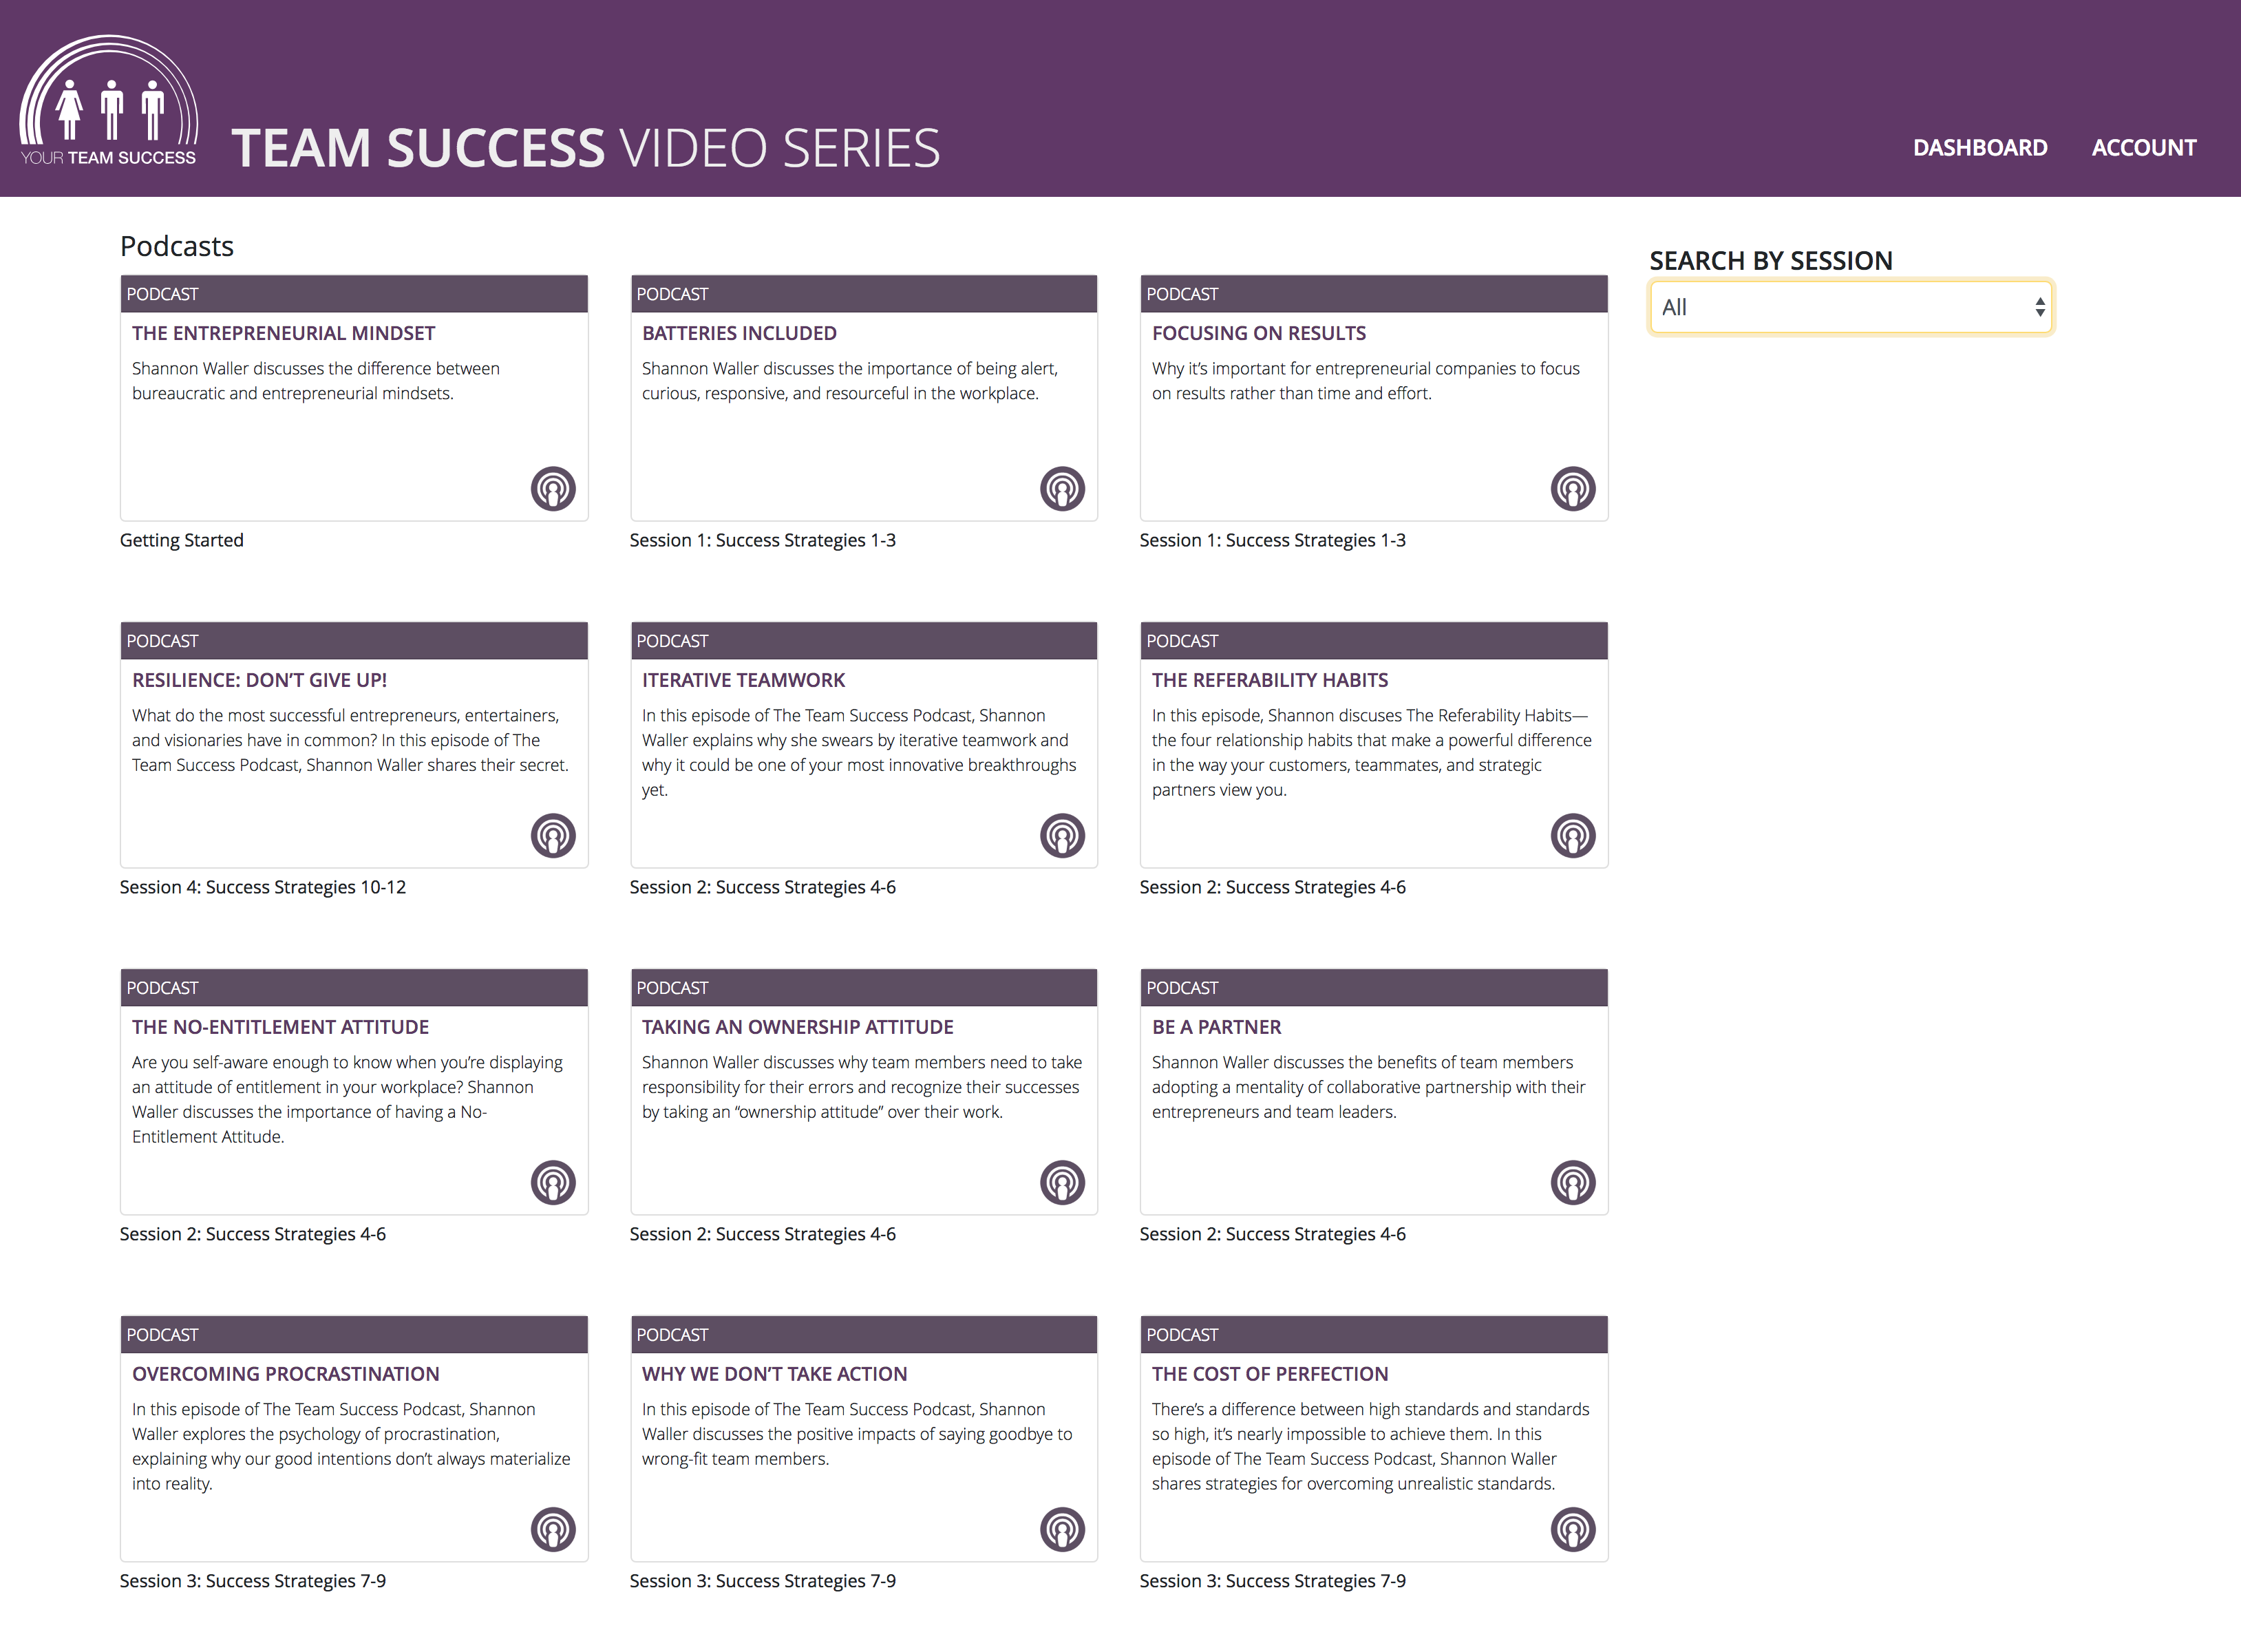 Team Success Video Series Resources